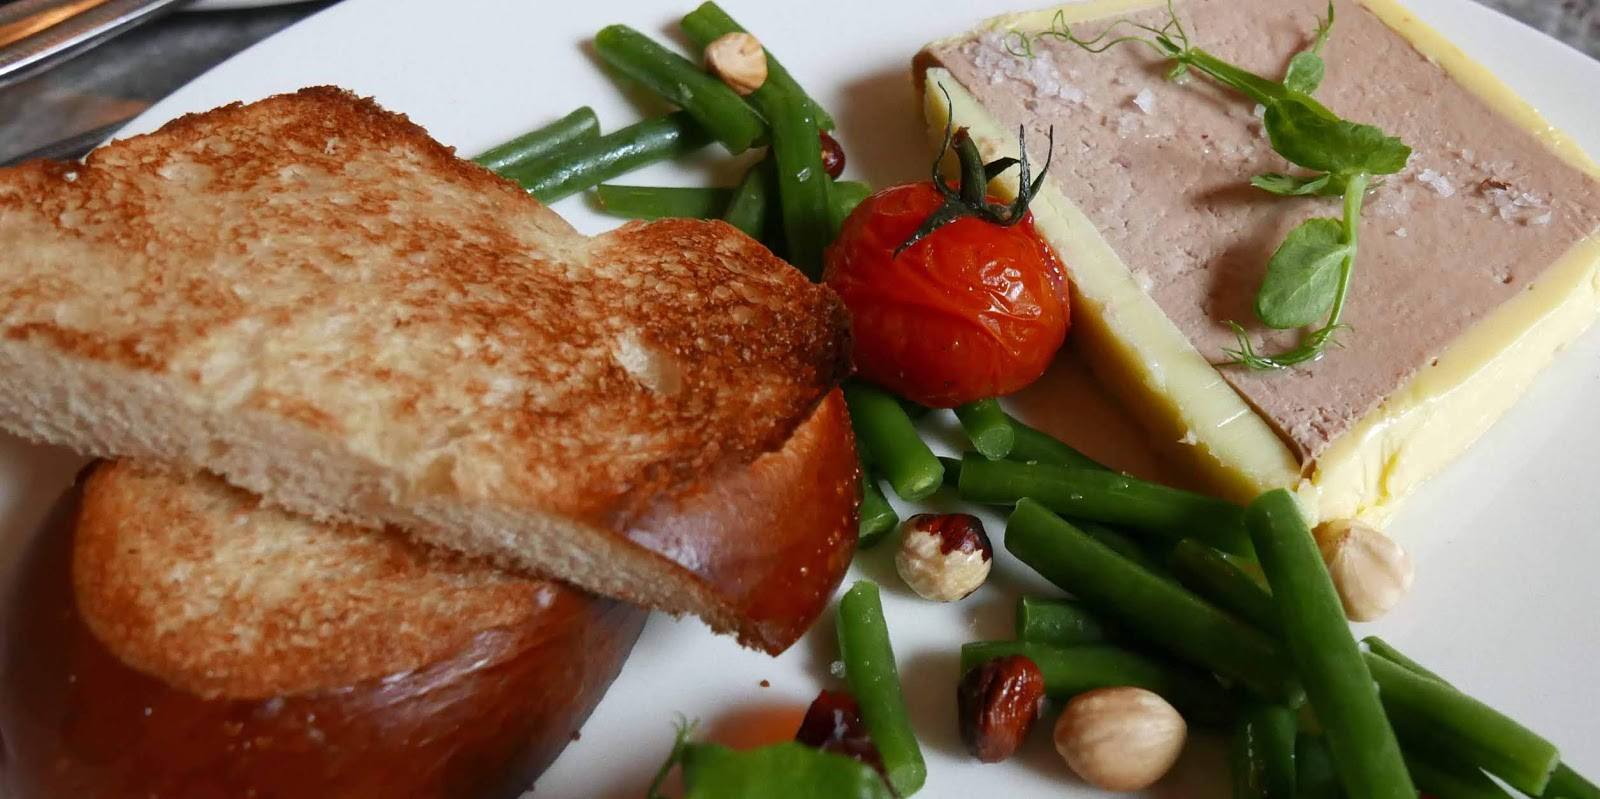 RESTAURANTS AND FOOD: New Chef and Tempting New Menu in Pembroke ...